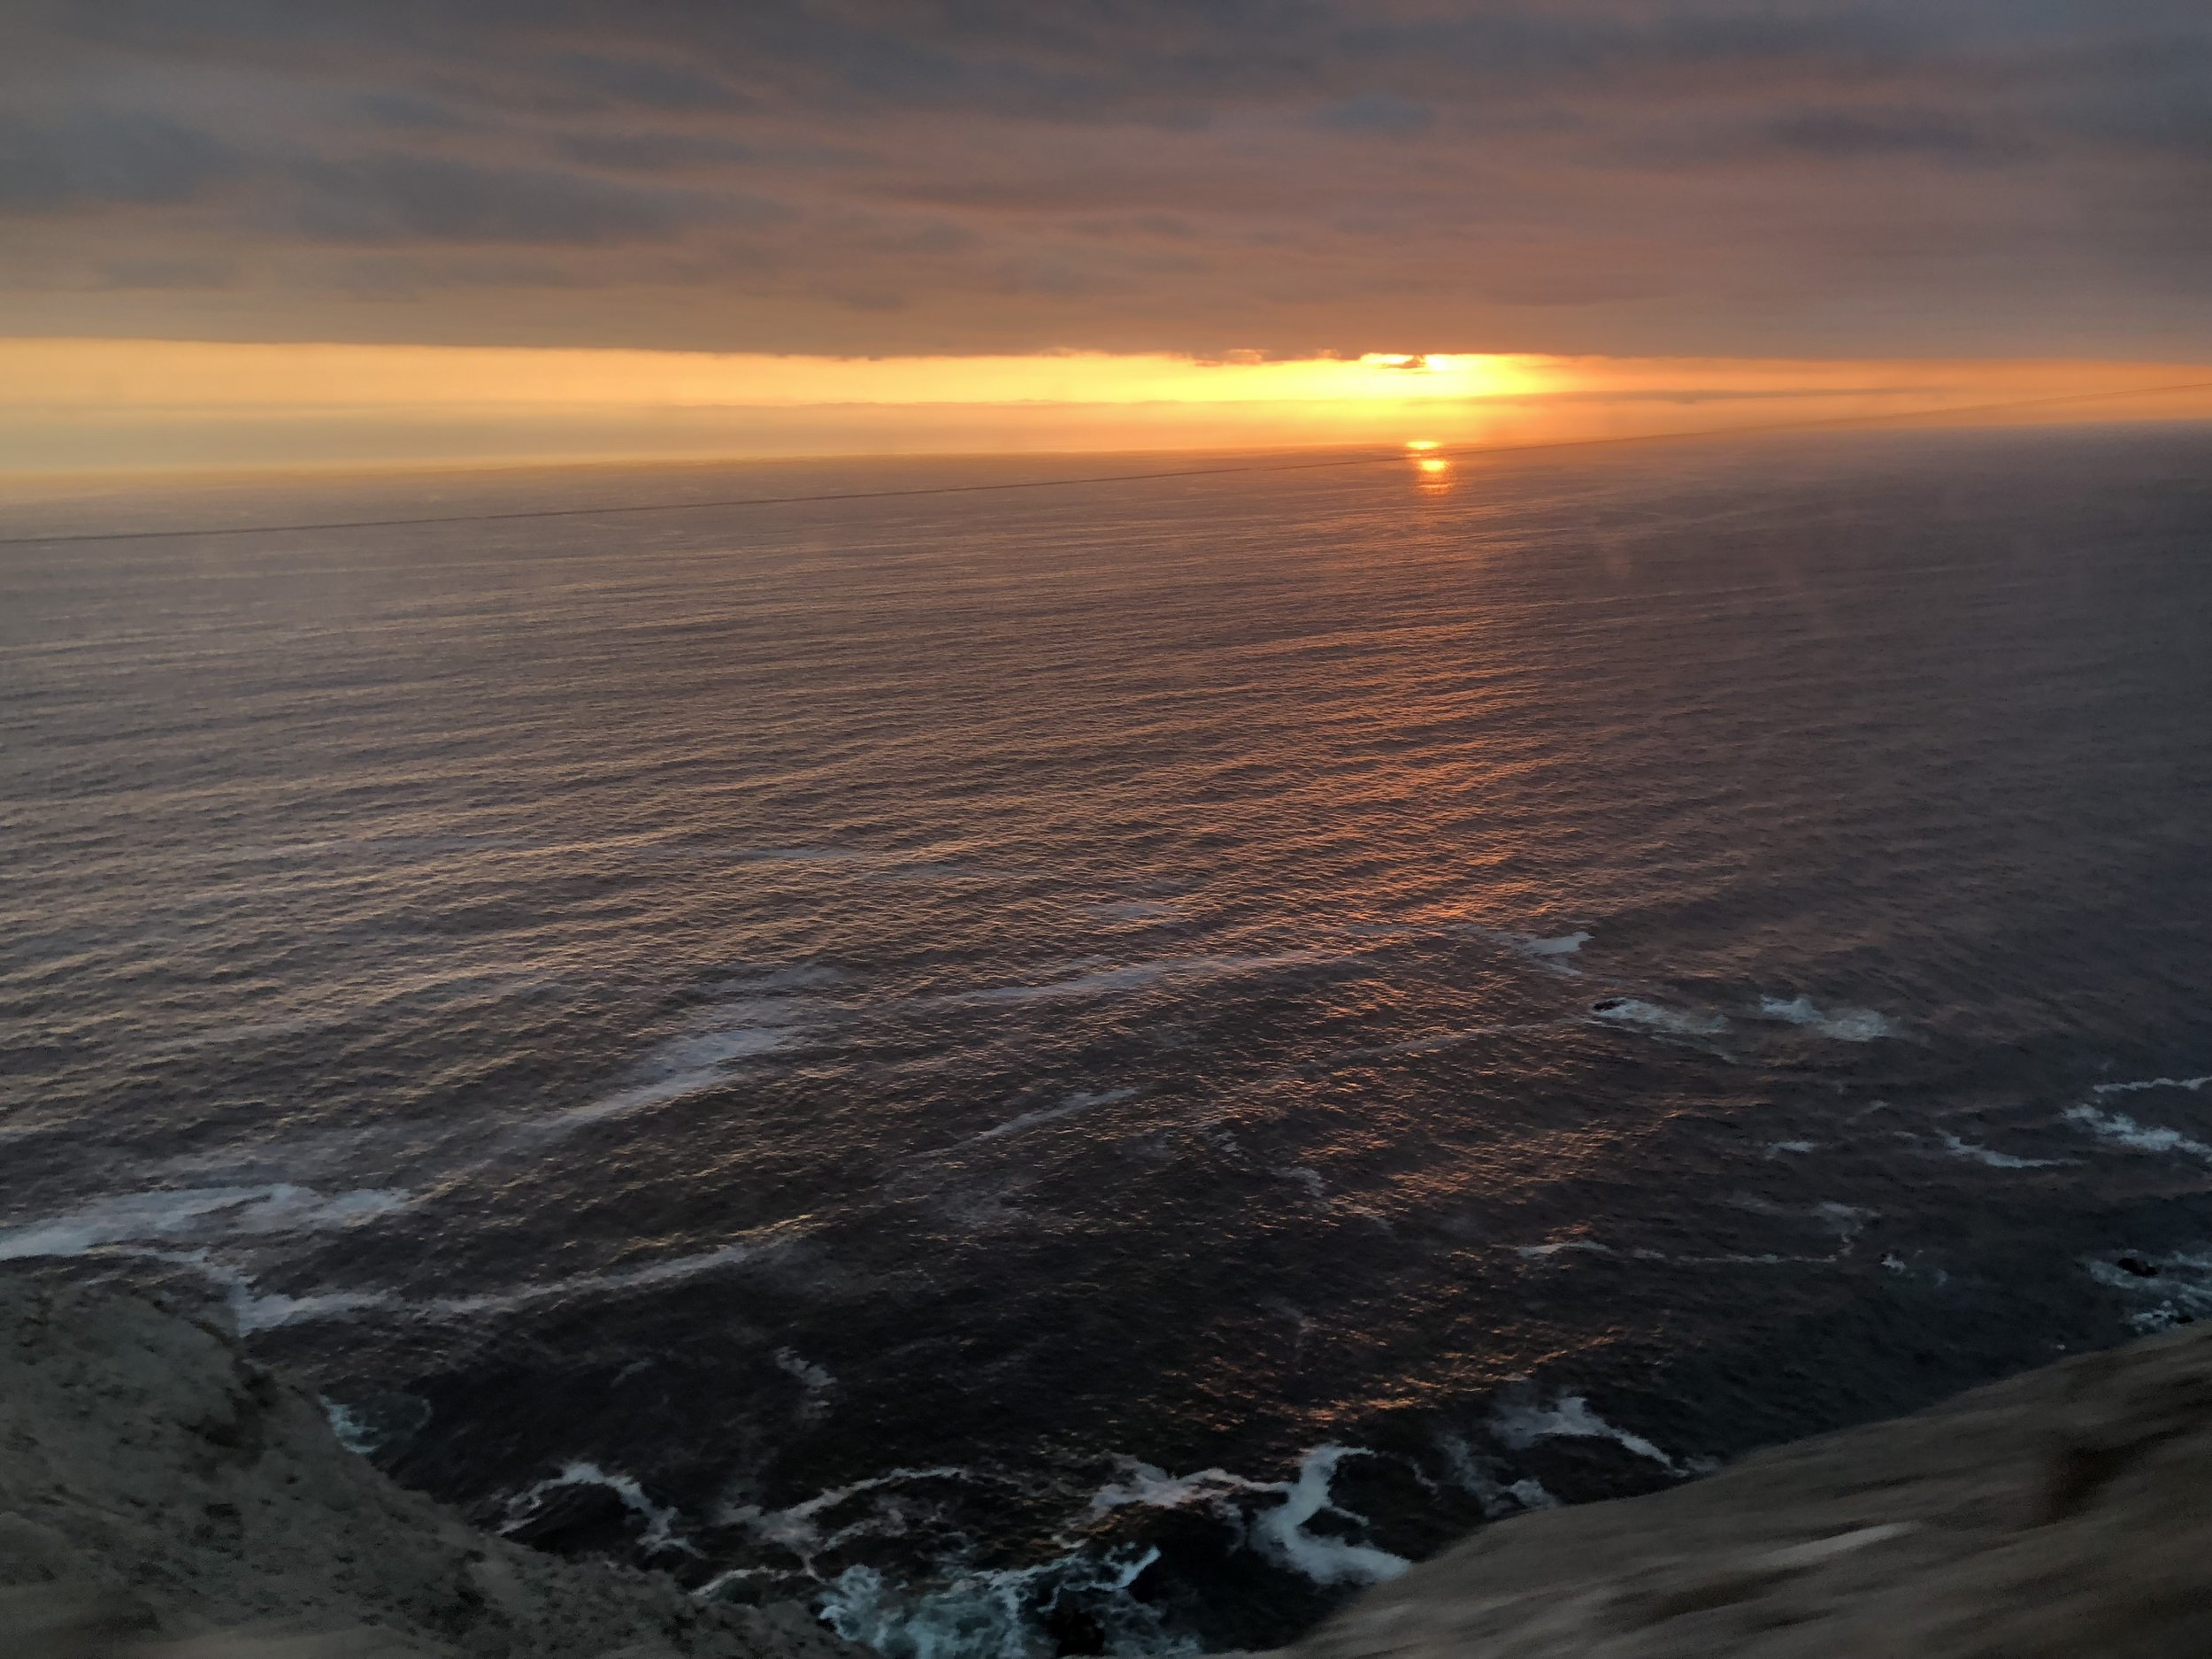 The dangerous cliffside provided an excellent view of the sunset.